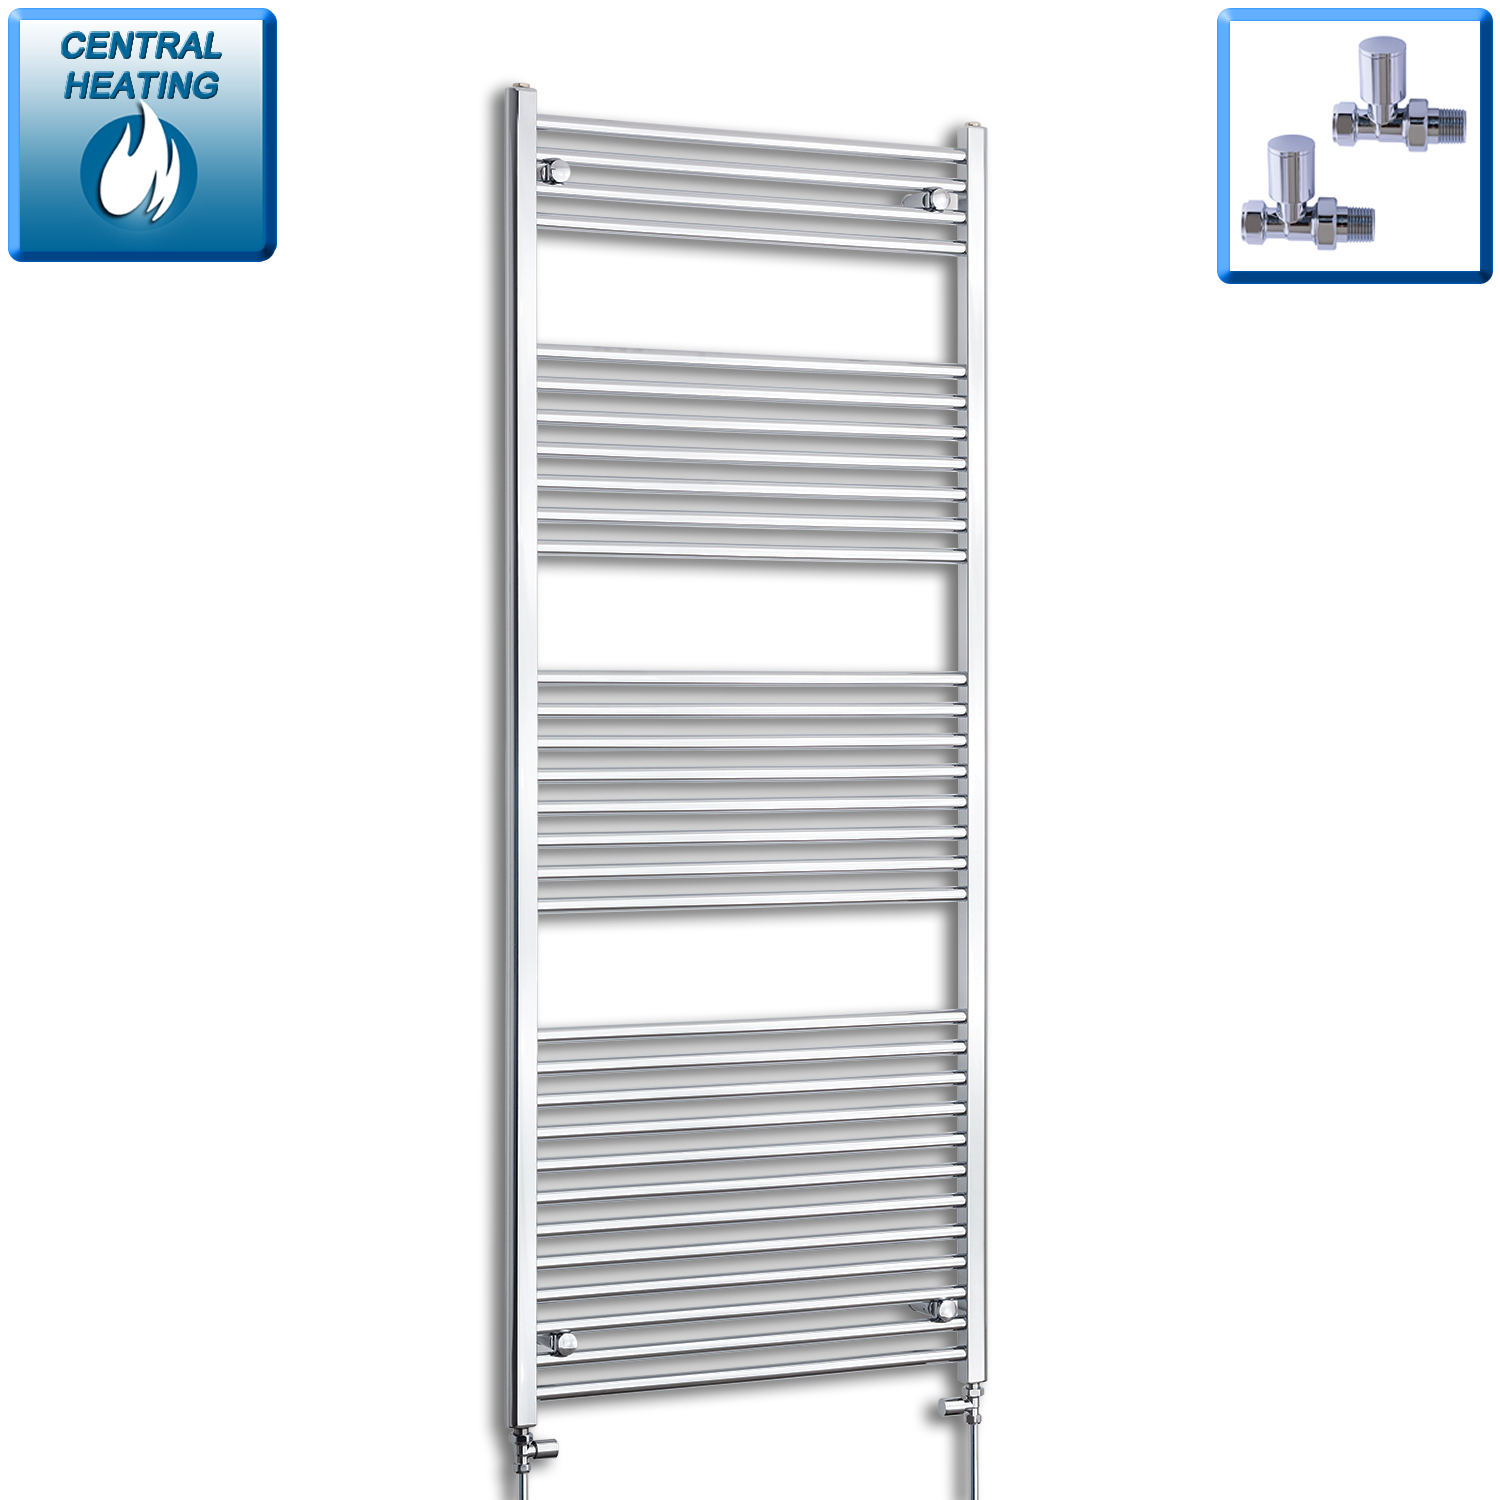 750mm Wide 1800mm High Flat Chrome Heated Towel Rail Radiator HTR,With Straight Valve